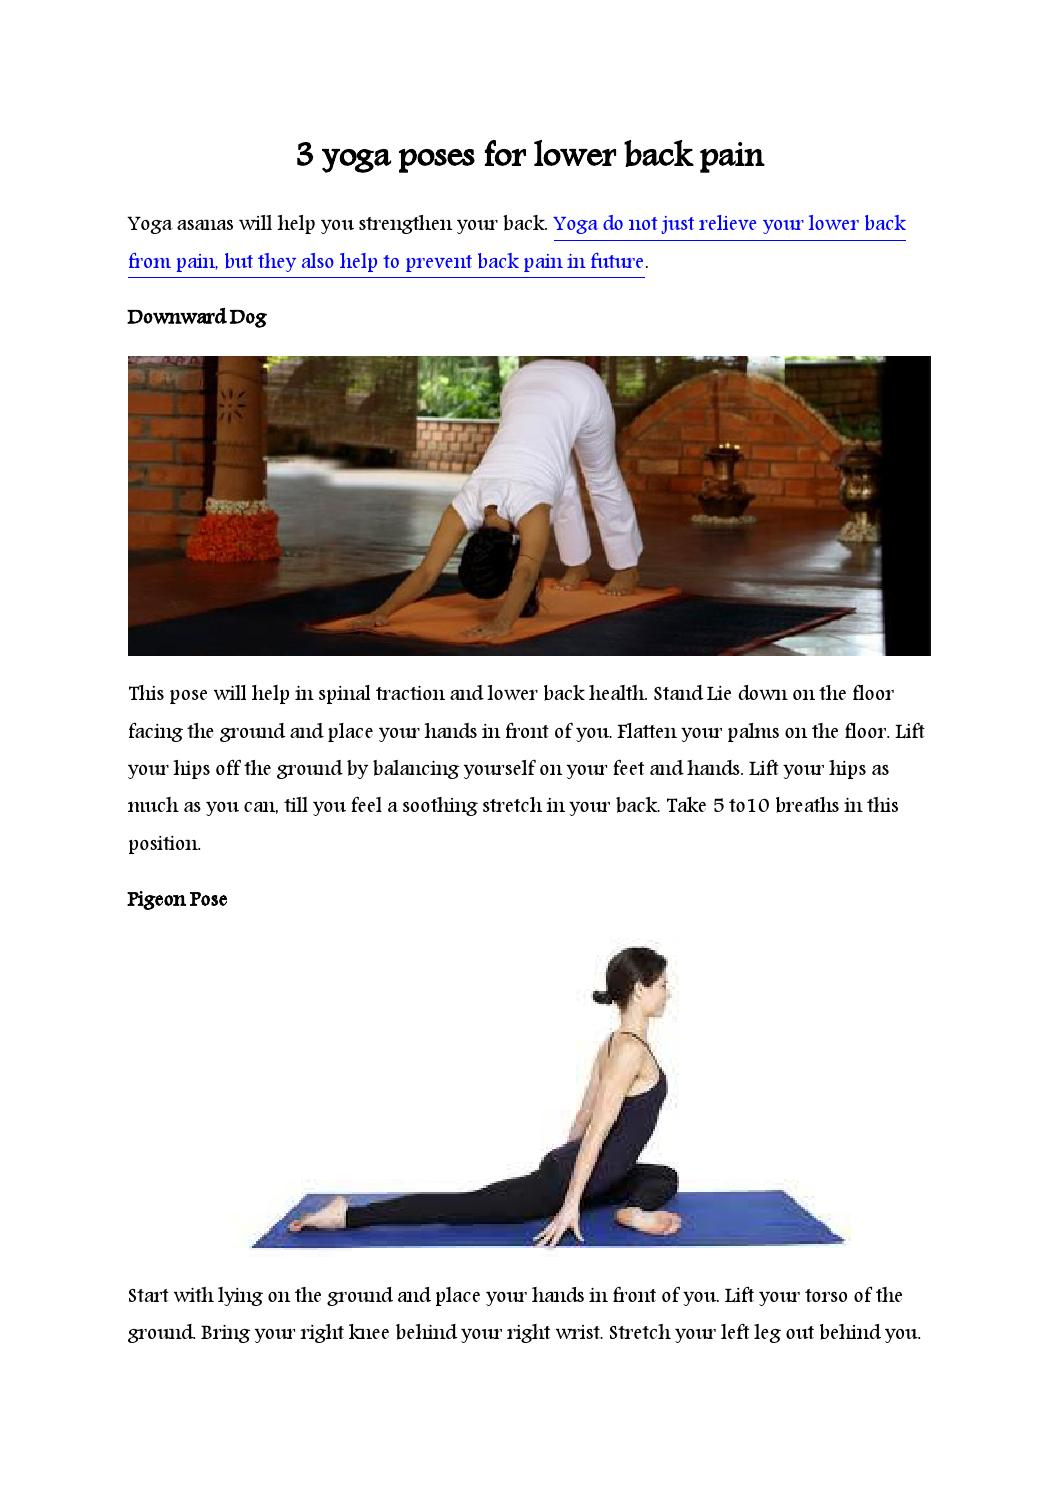 50 yoga poses for lower back pain by Quotes by Sri Sri Ravi Shankar ...